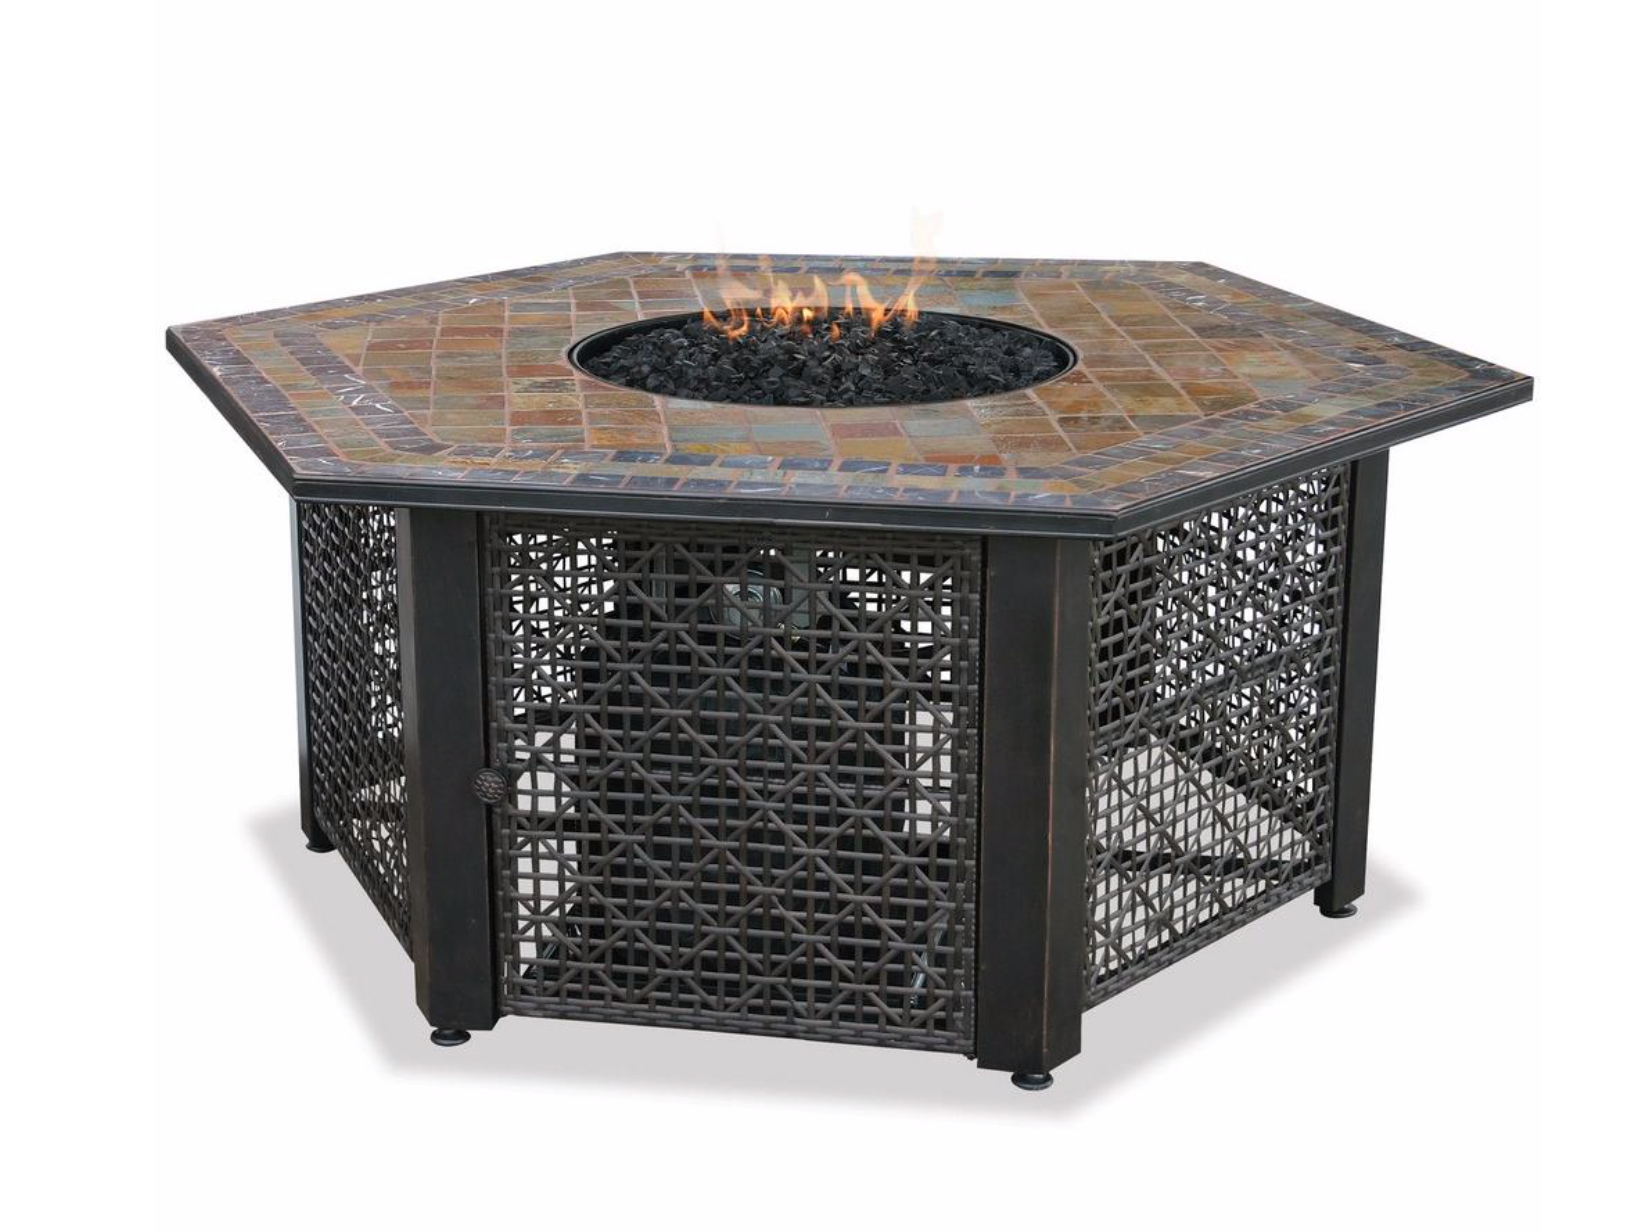 Uniflame Gad1374sp Uniflame 55 1 Liquid Propane Gas Outdoor Firebowl With Slate Tile Mantel Gas Fire Pit Table Outdoor Fire Pit Table Gas Fire Table